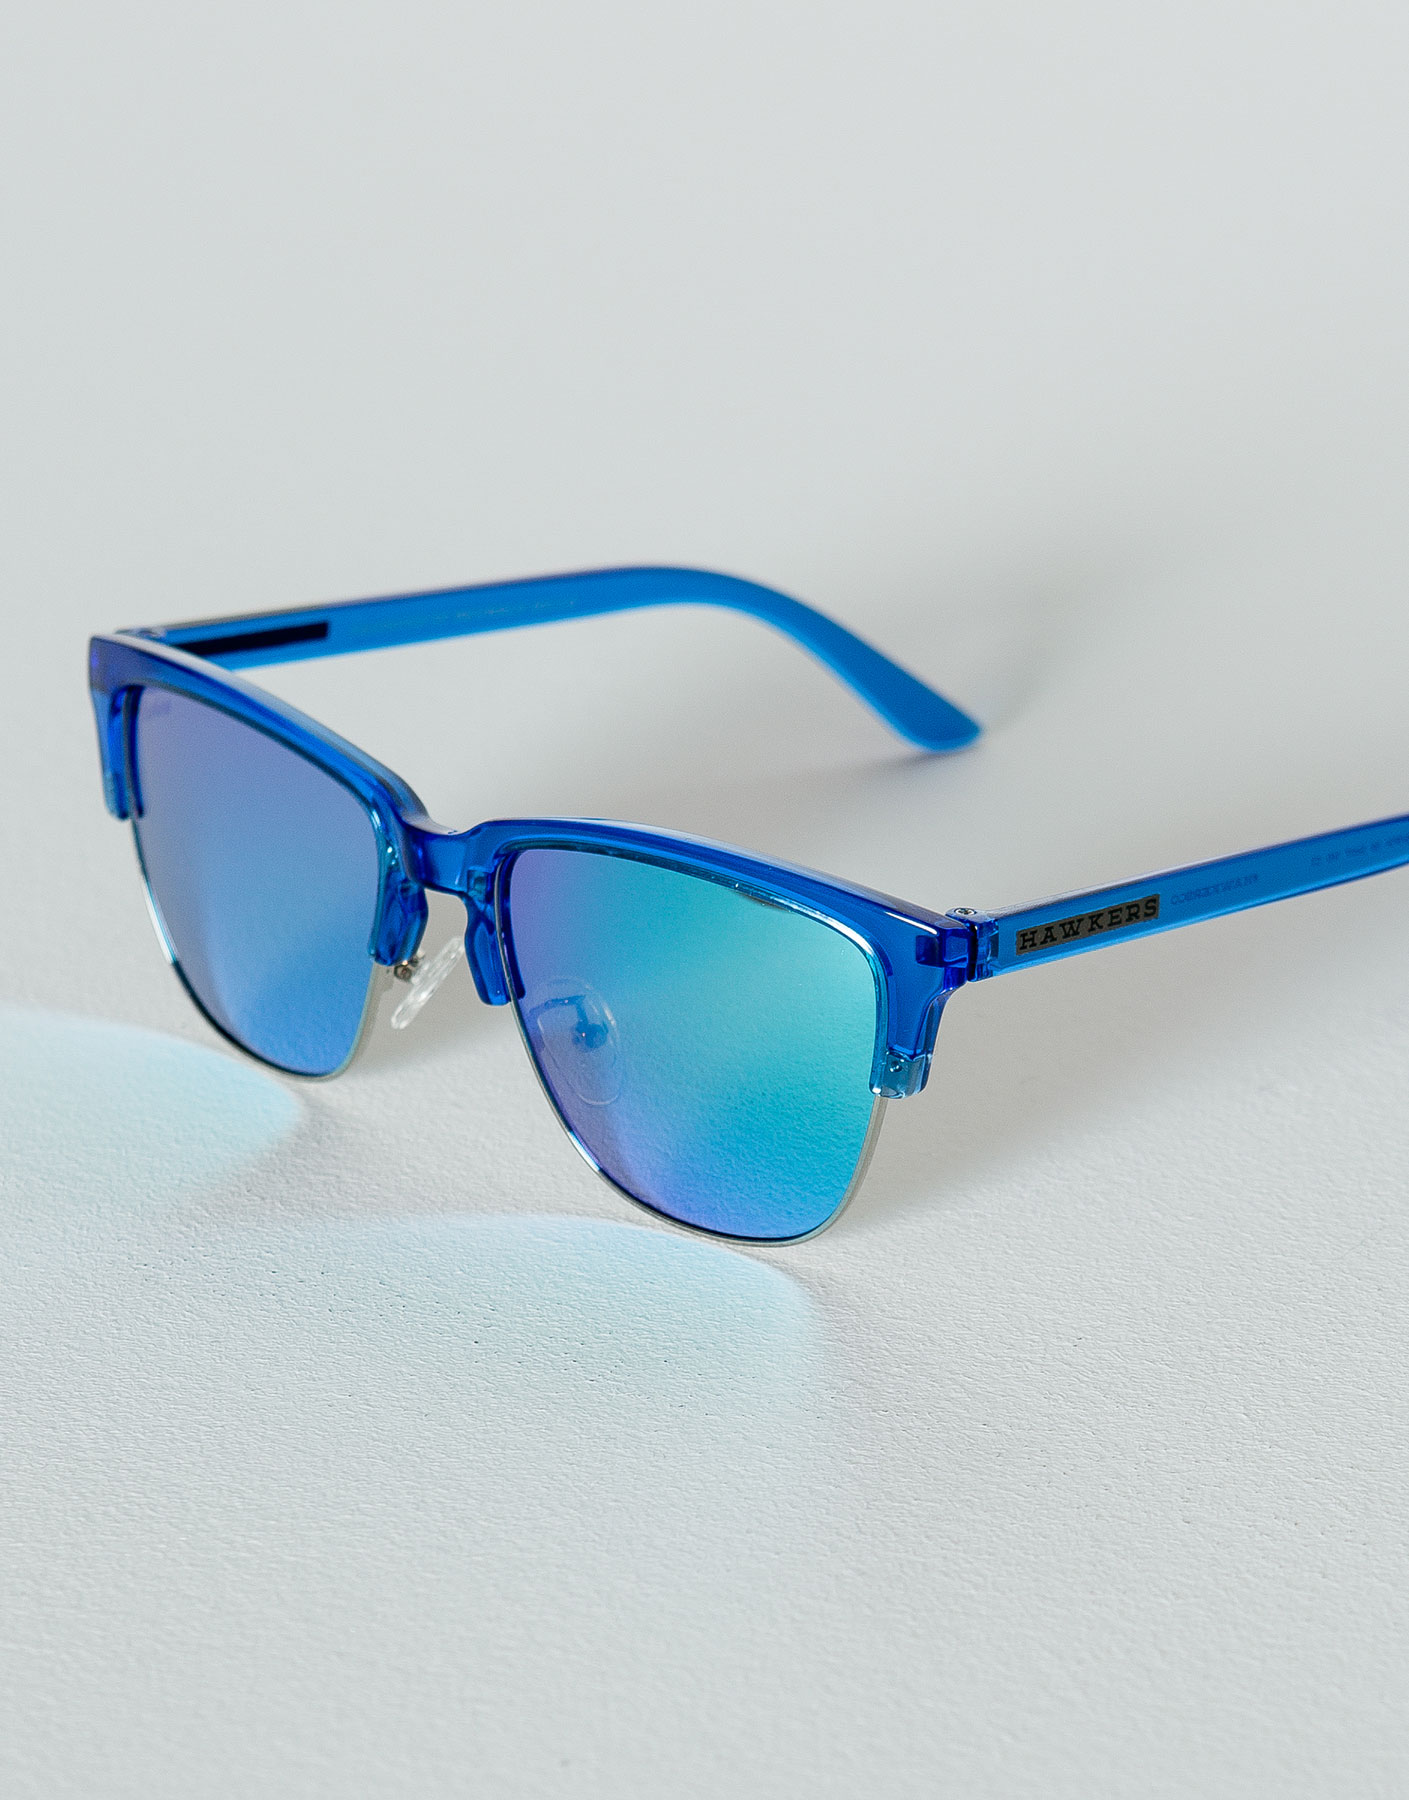 Hawkers Sea Clear Blue Classic Sunglasses